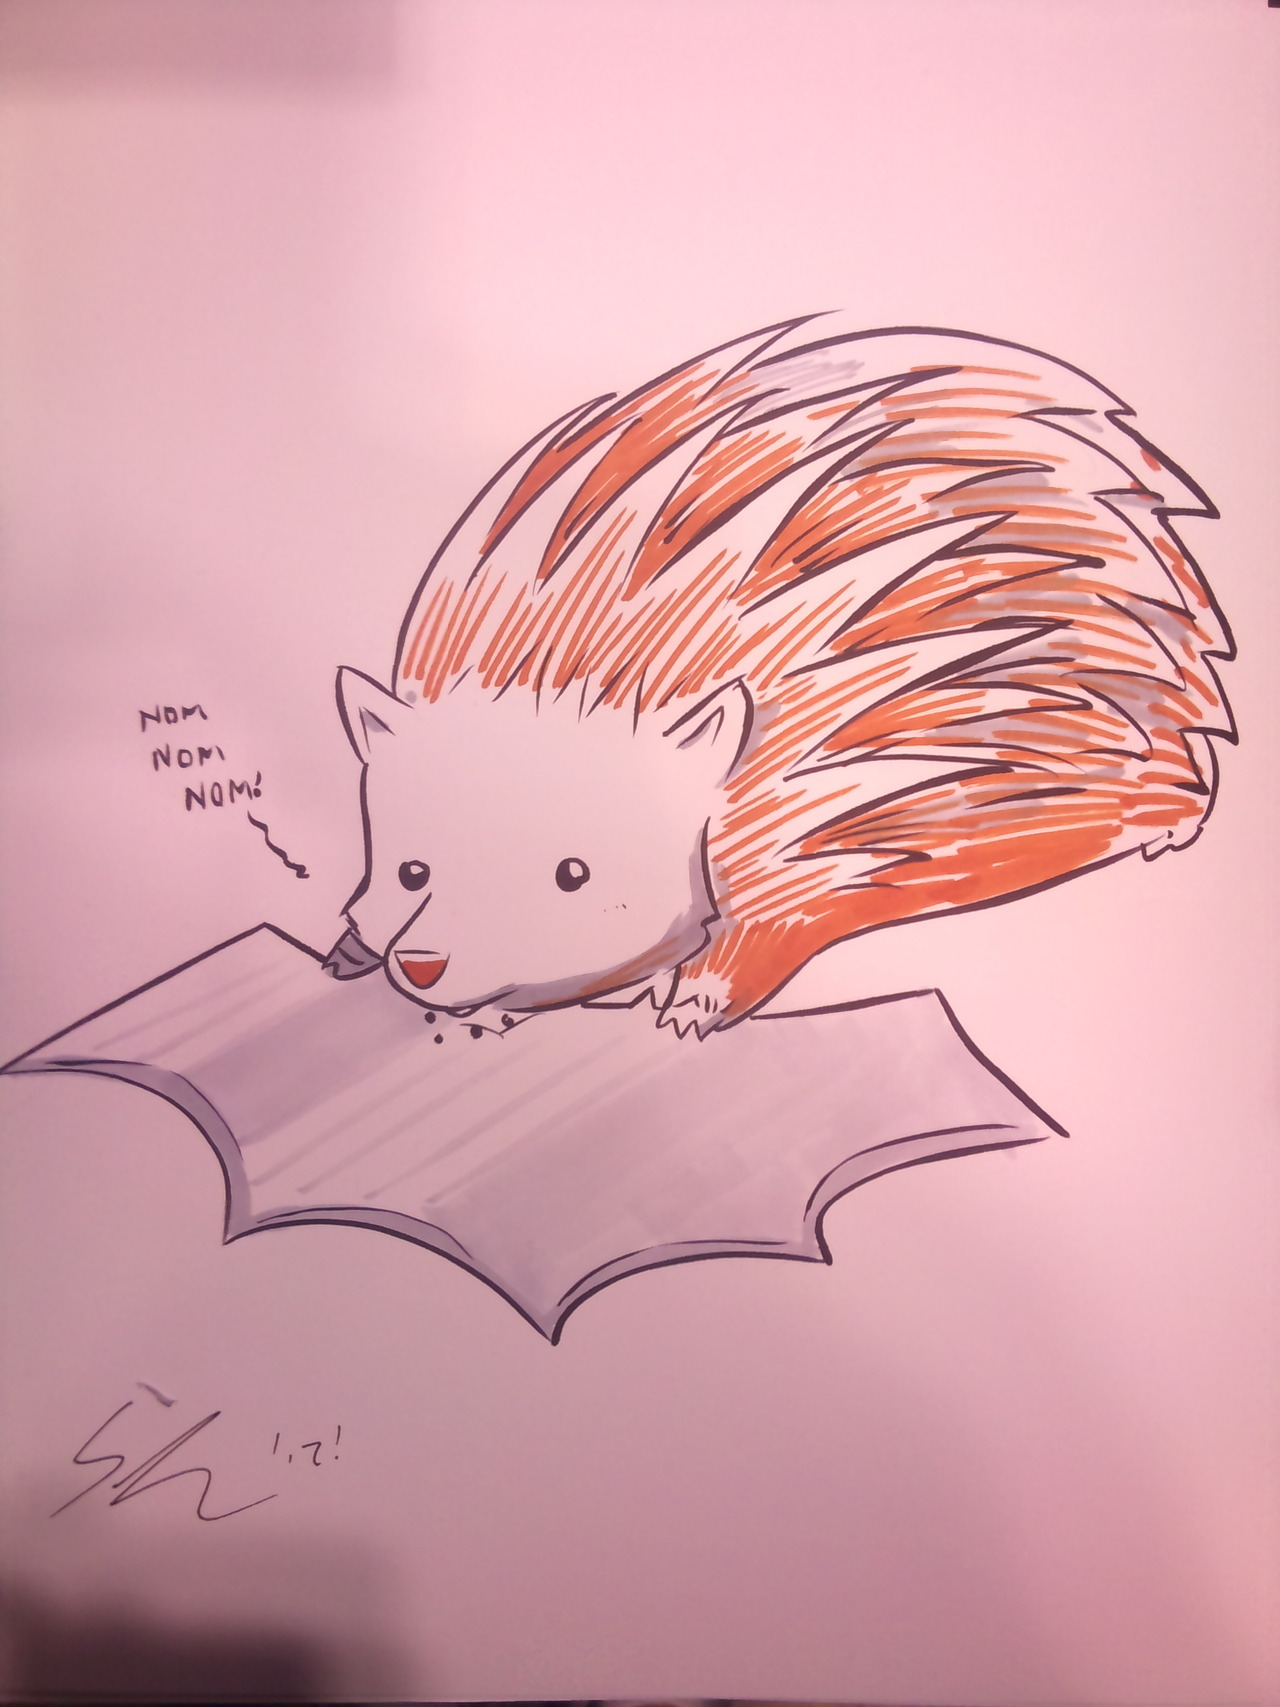 Hedgehogs love batarangs I guess?